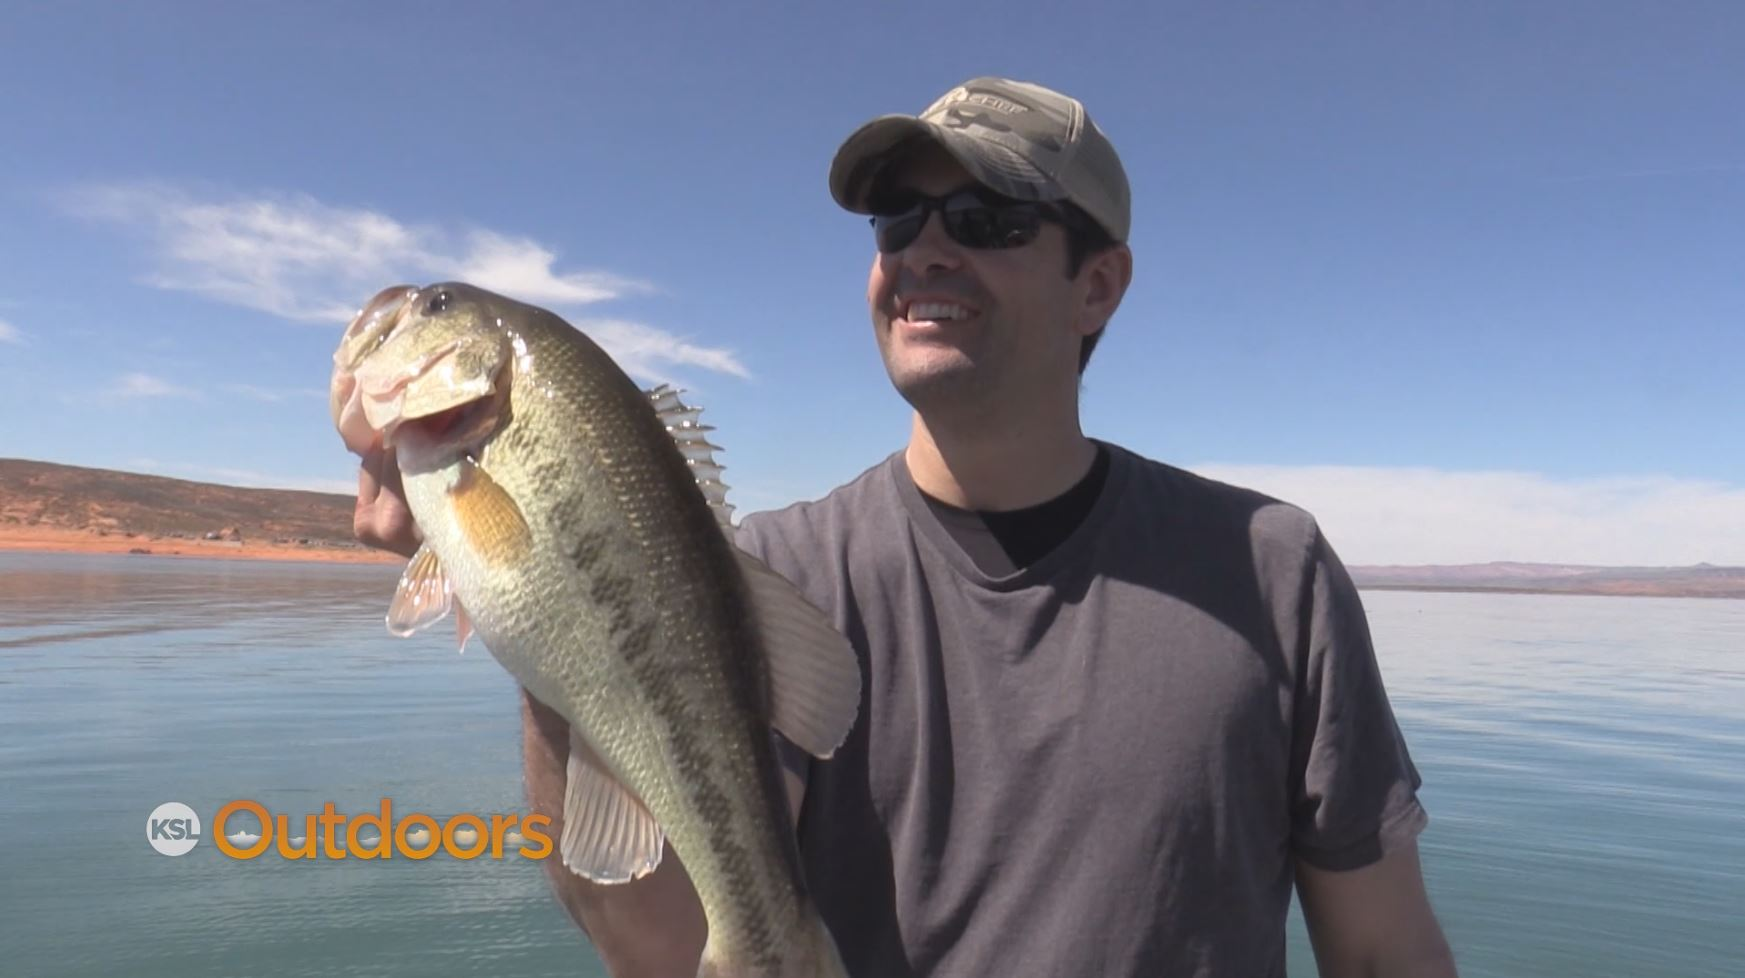 Ksl outdoors spring bass fishing at sand hollow state park for Sand hollow fishing report